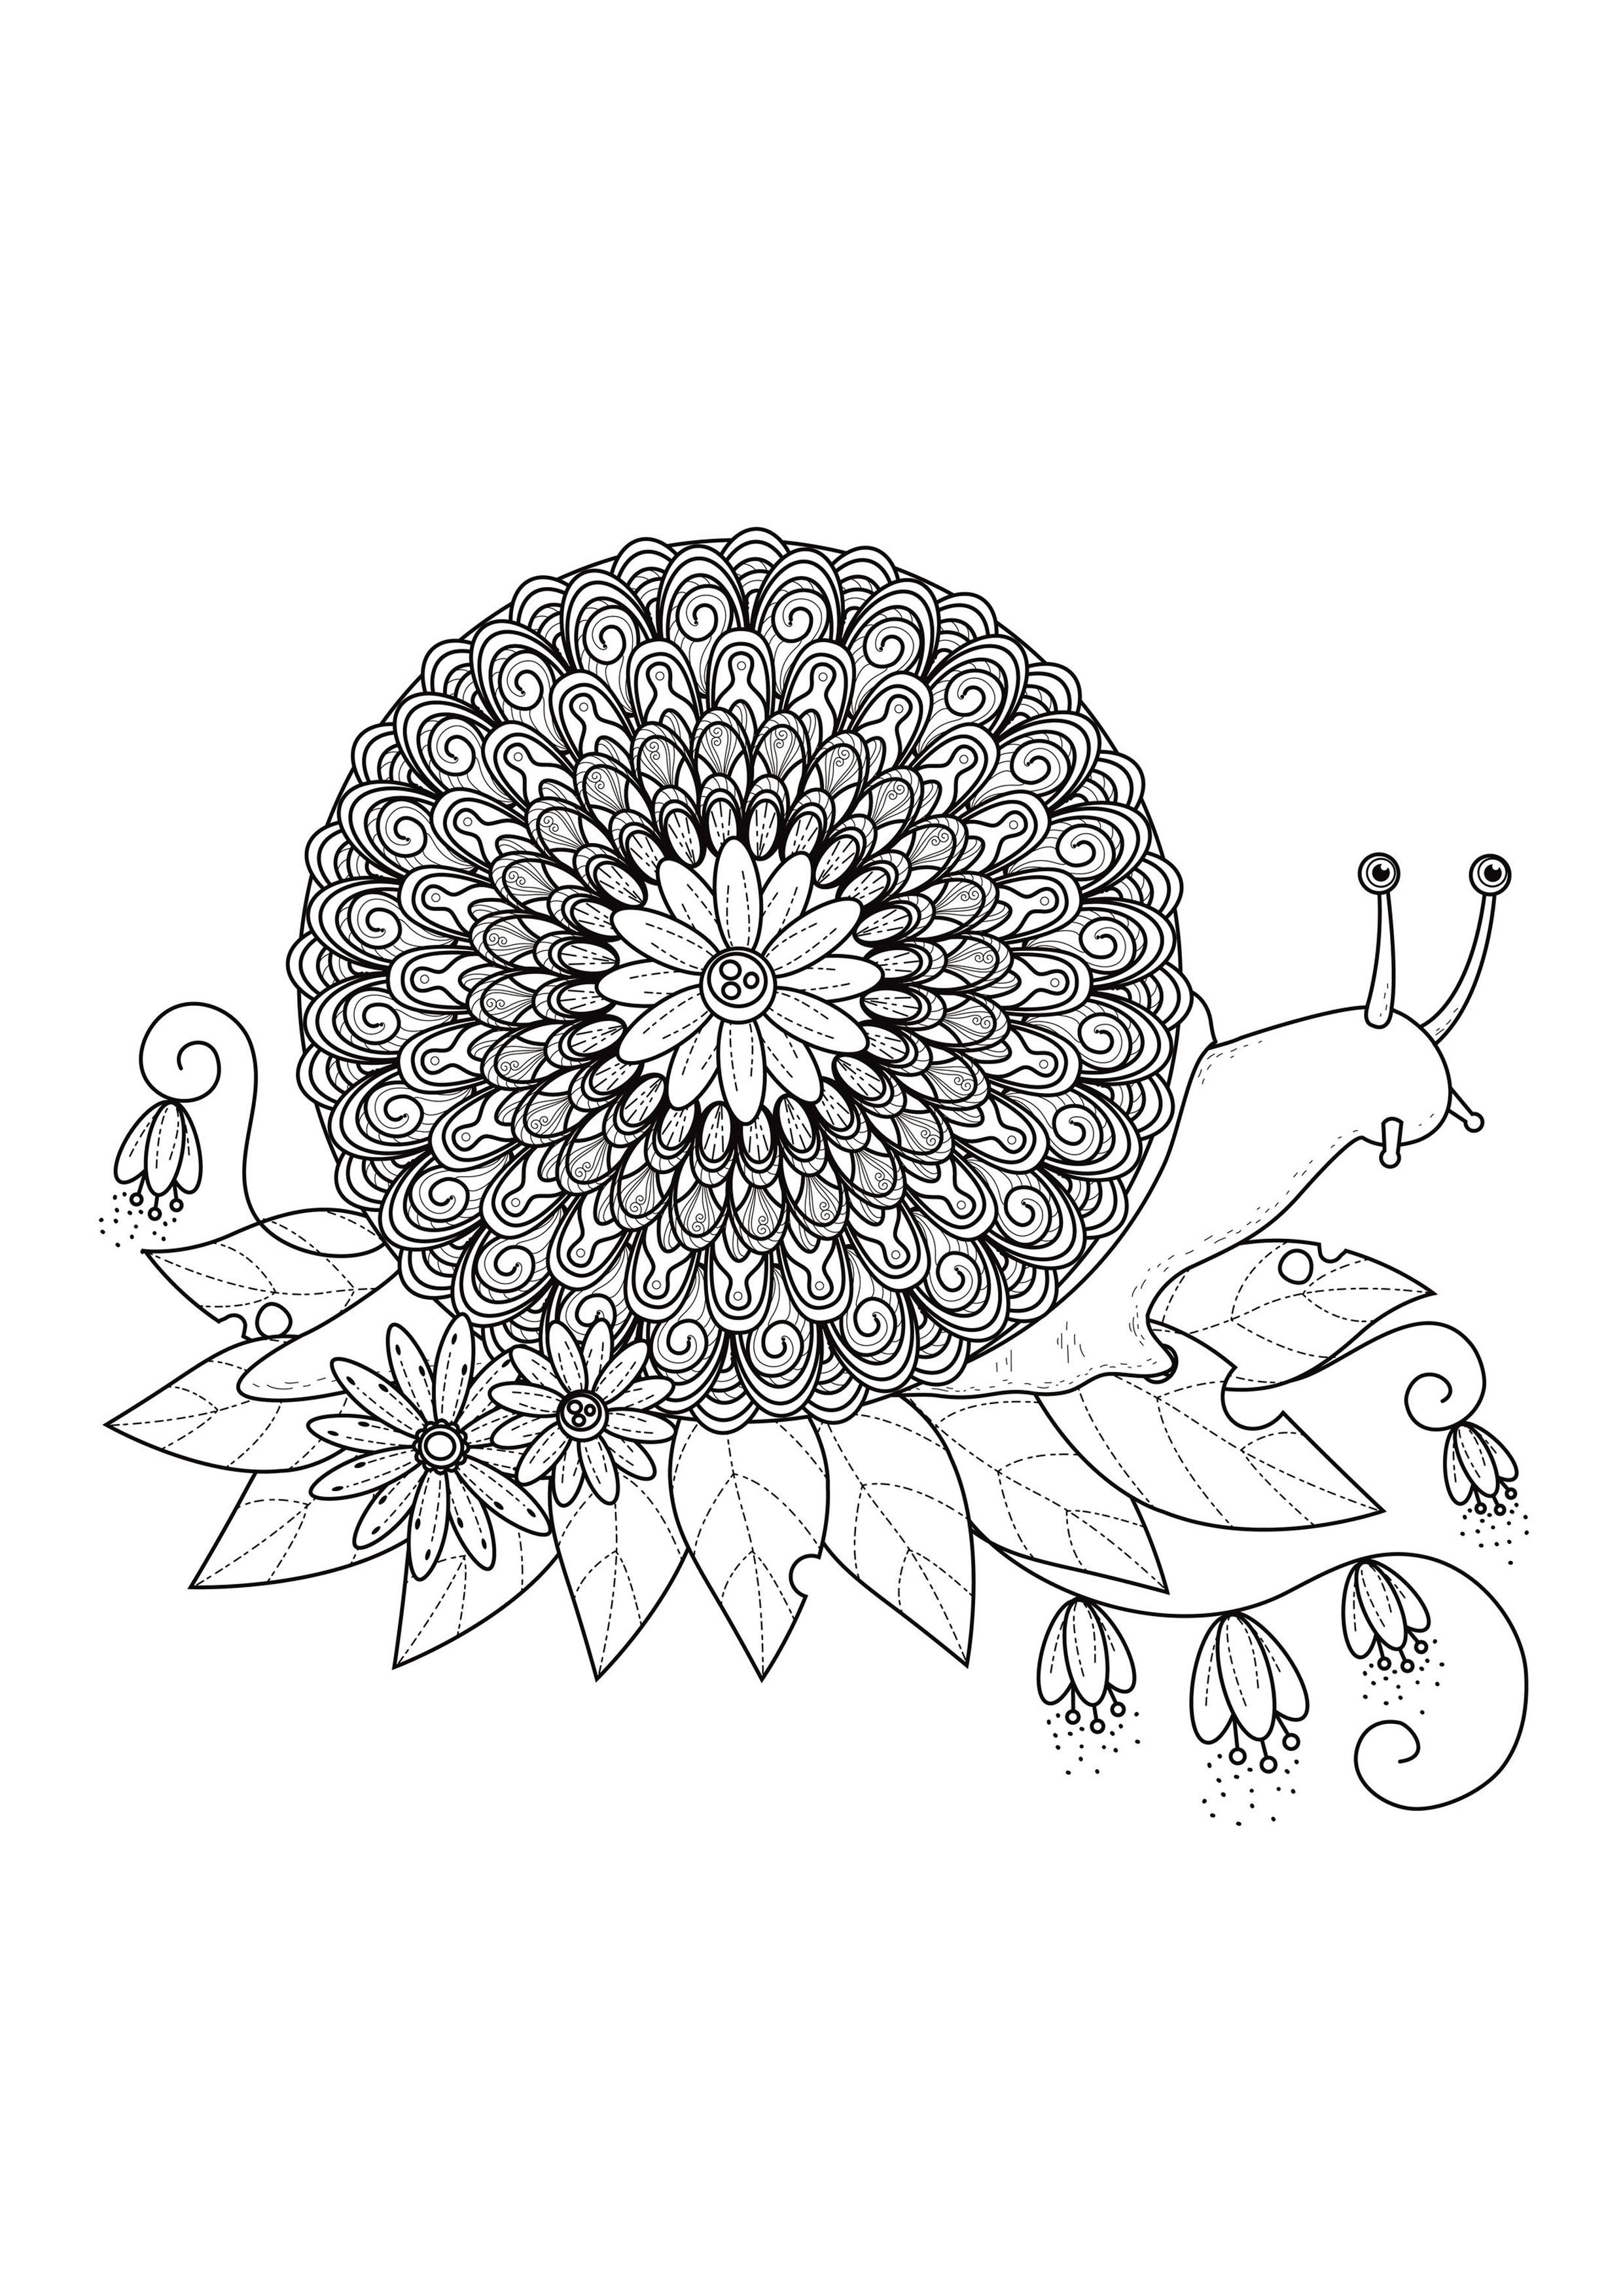 A Mix Between A Snail And A Mandala From The Gallery